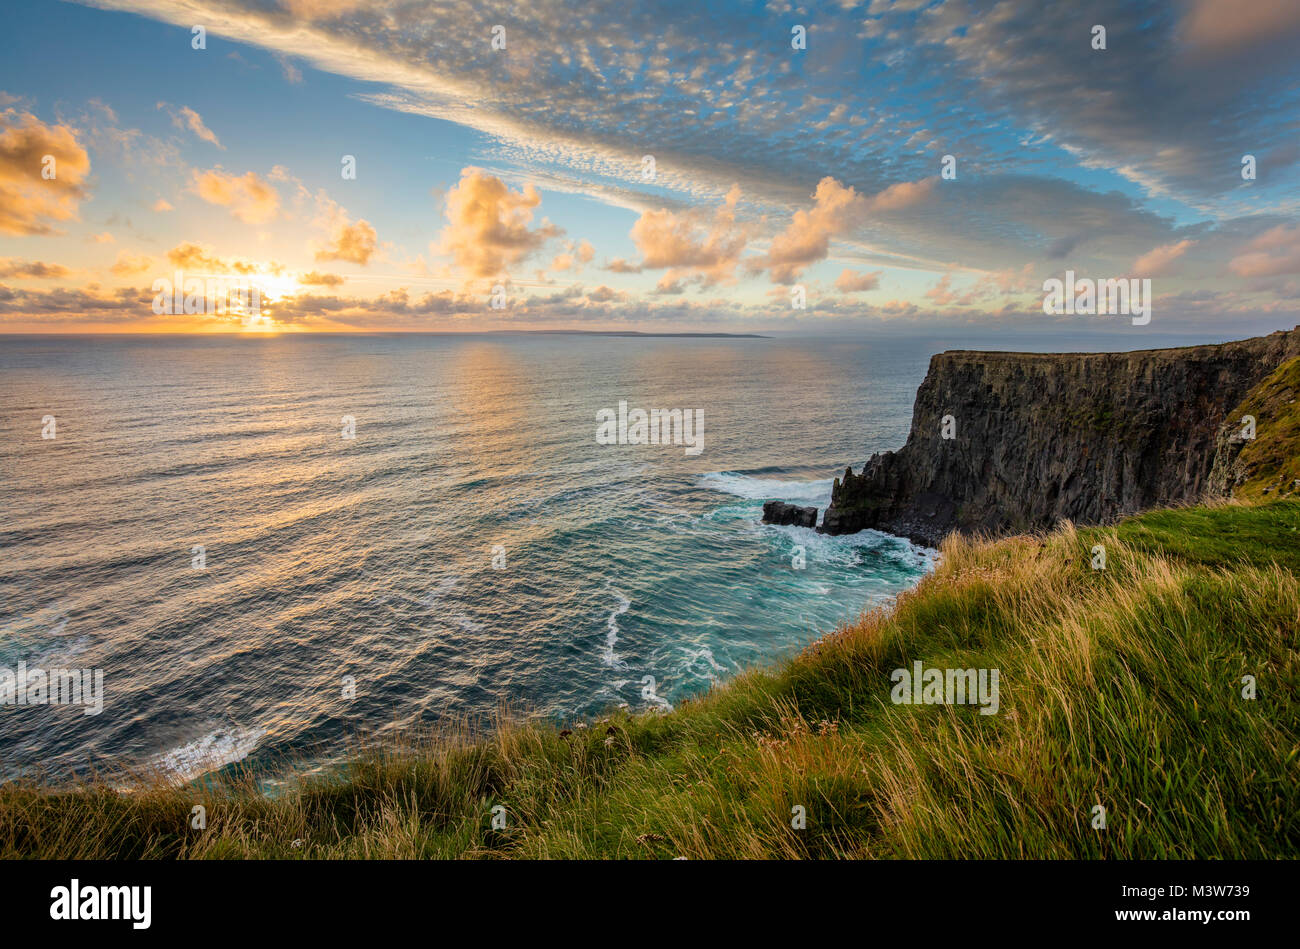 Evening at the Cliffs of Moher, County Clare, Ireland. - Stock Image